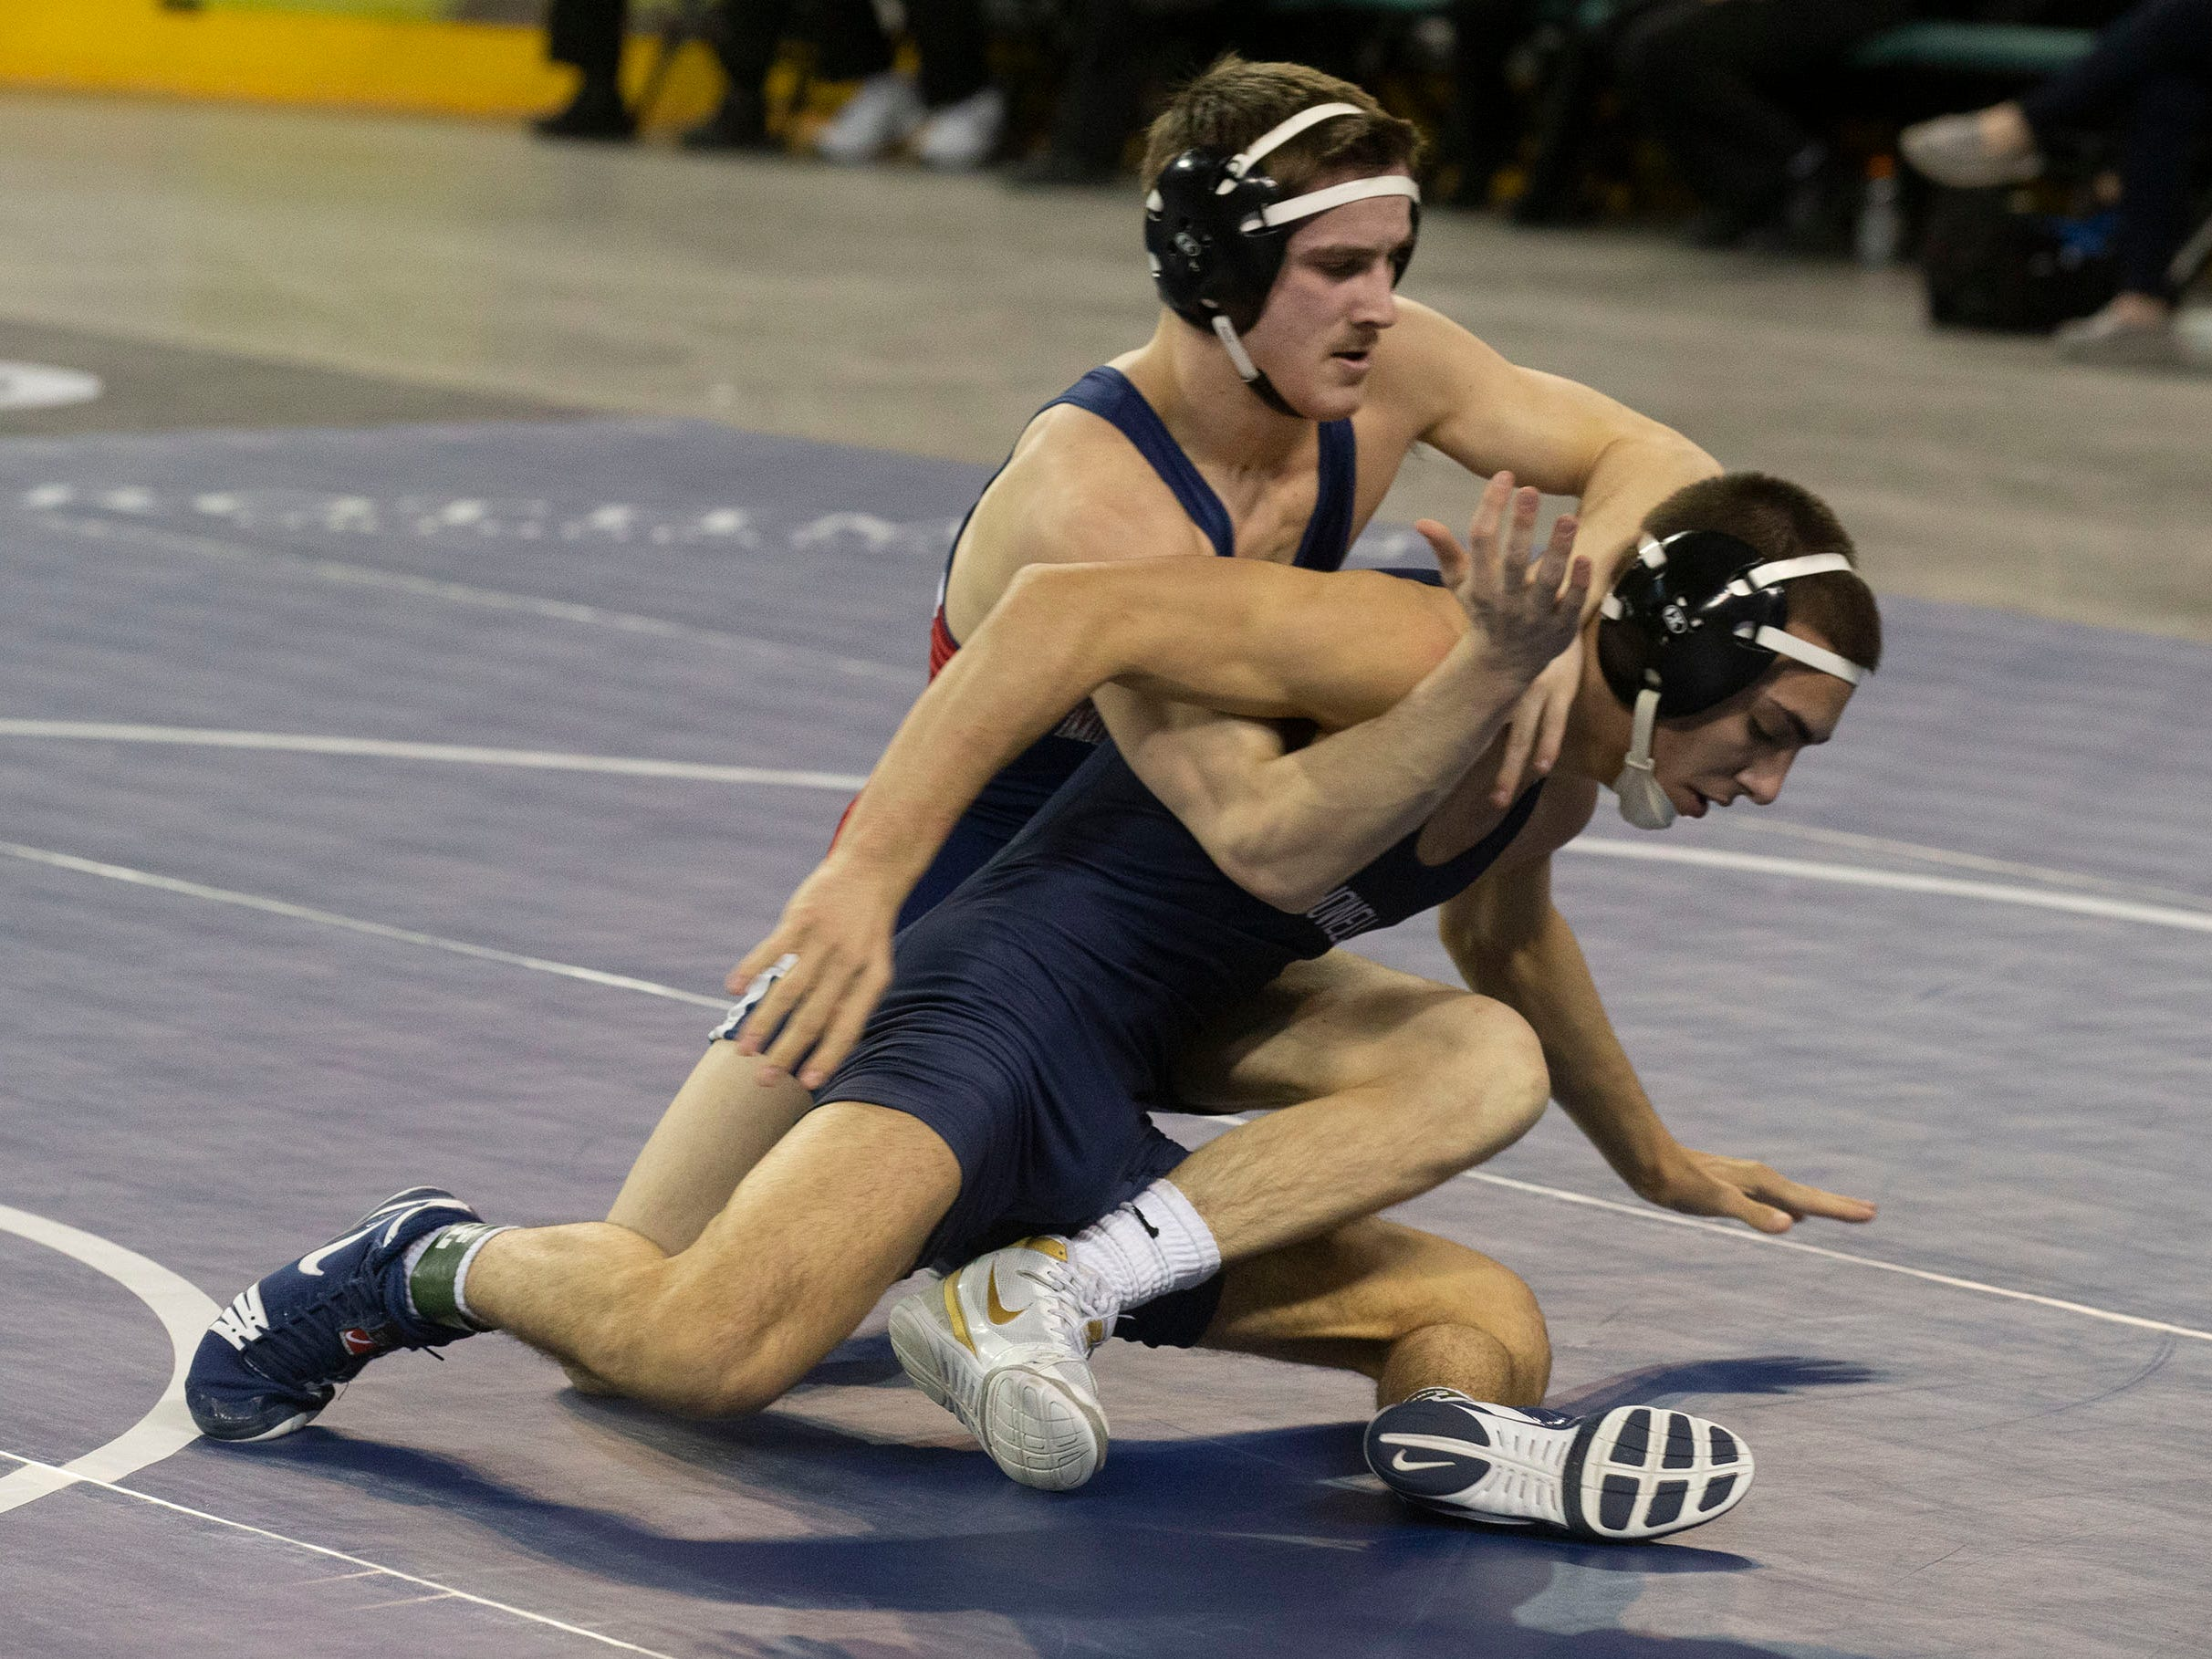 Howell's Neiko Malone vs Mendham's Dom DiGena in their 126 lbs. bout. NJSIAA State Wrestling opening rounds in Atlantic City, Thursday February 28, 2019